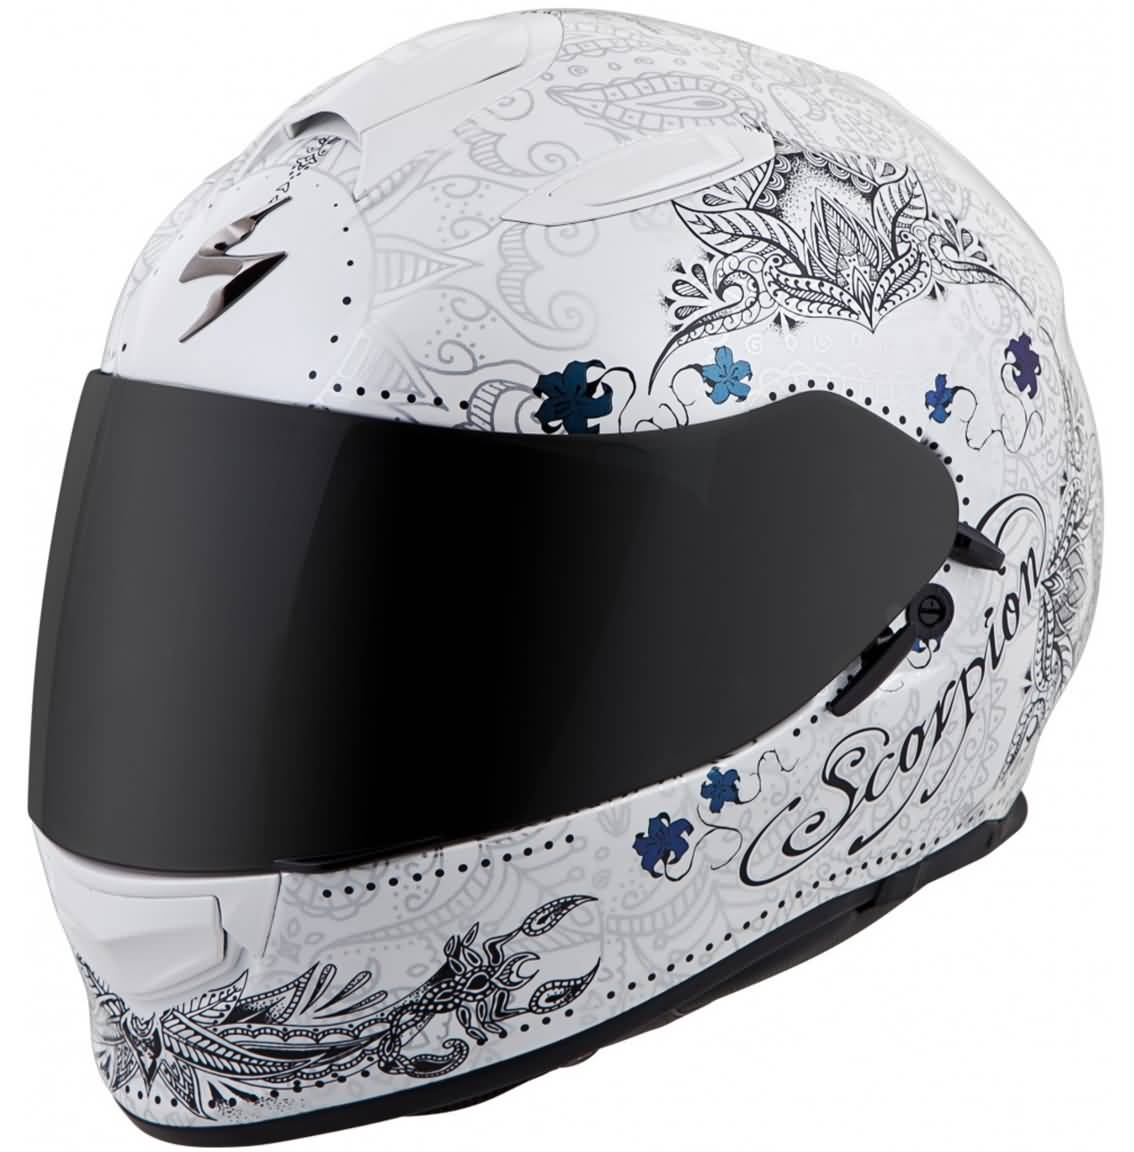 Scorpion 2017 | Premium Street Motorcycle Helmets Collection